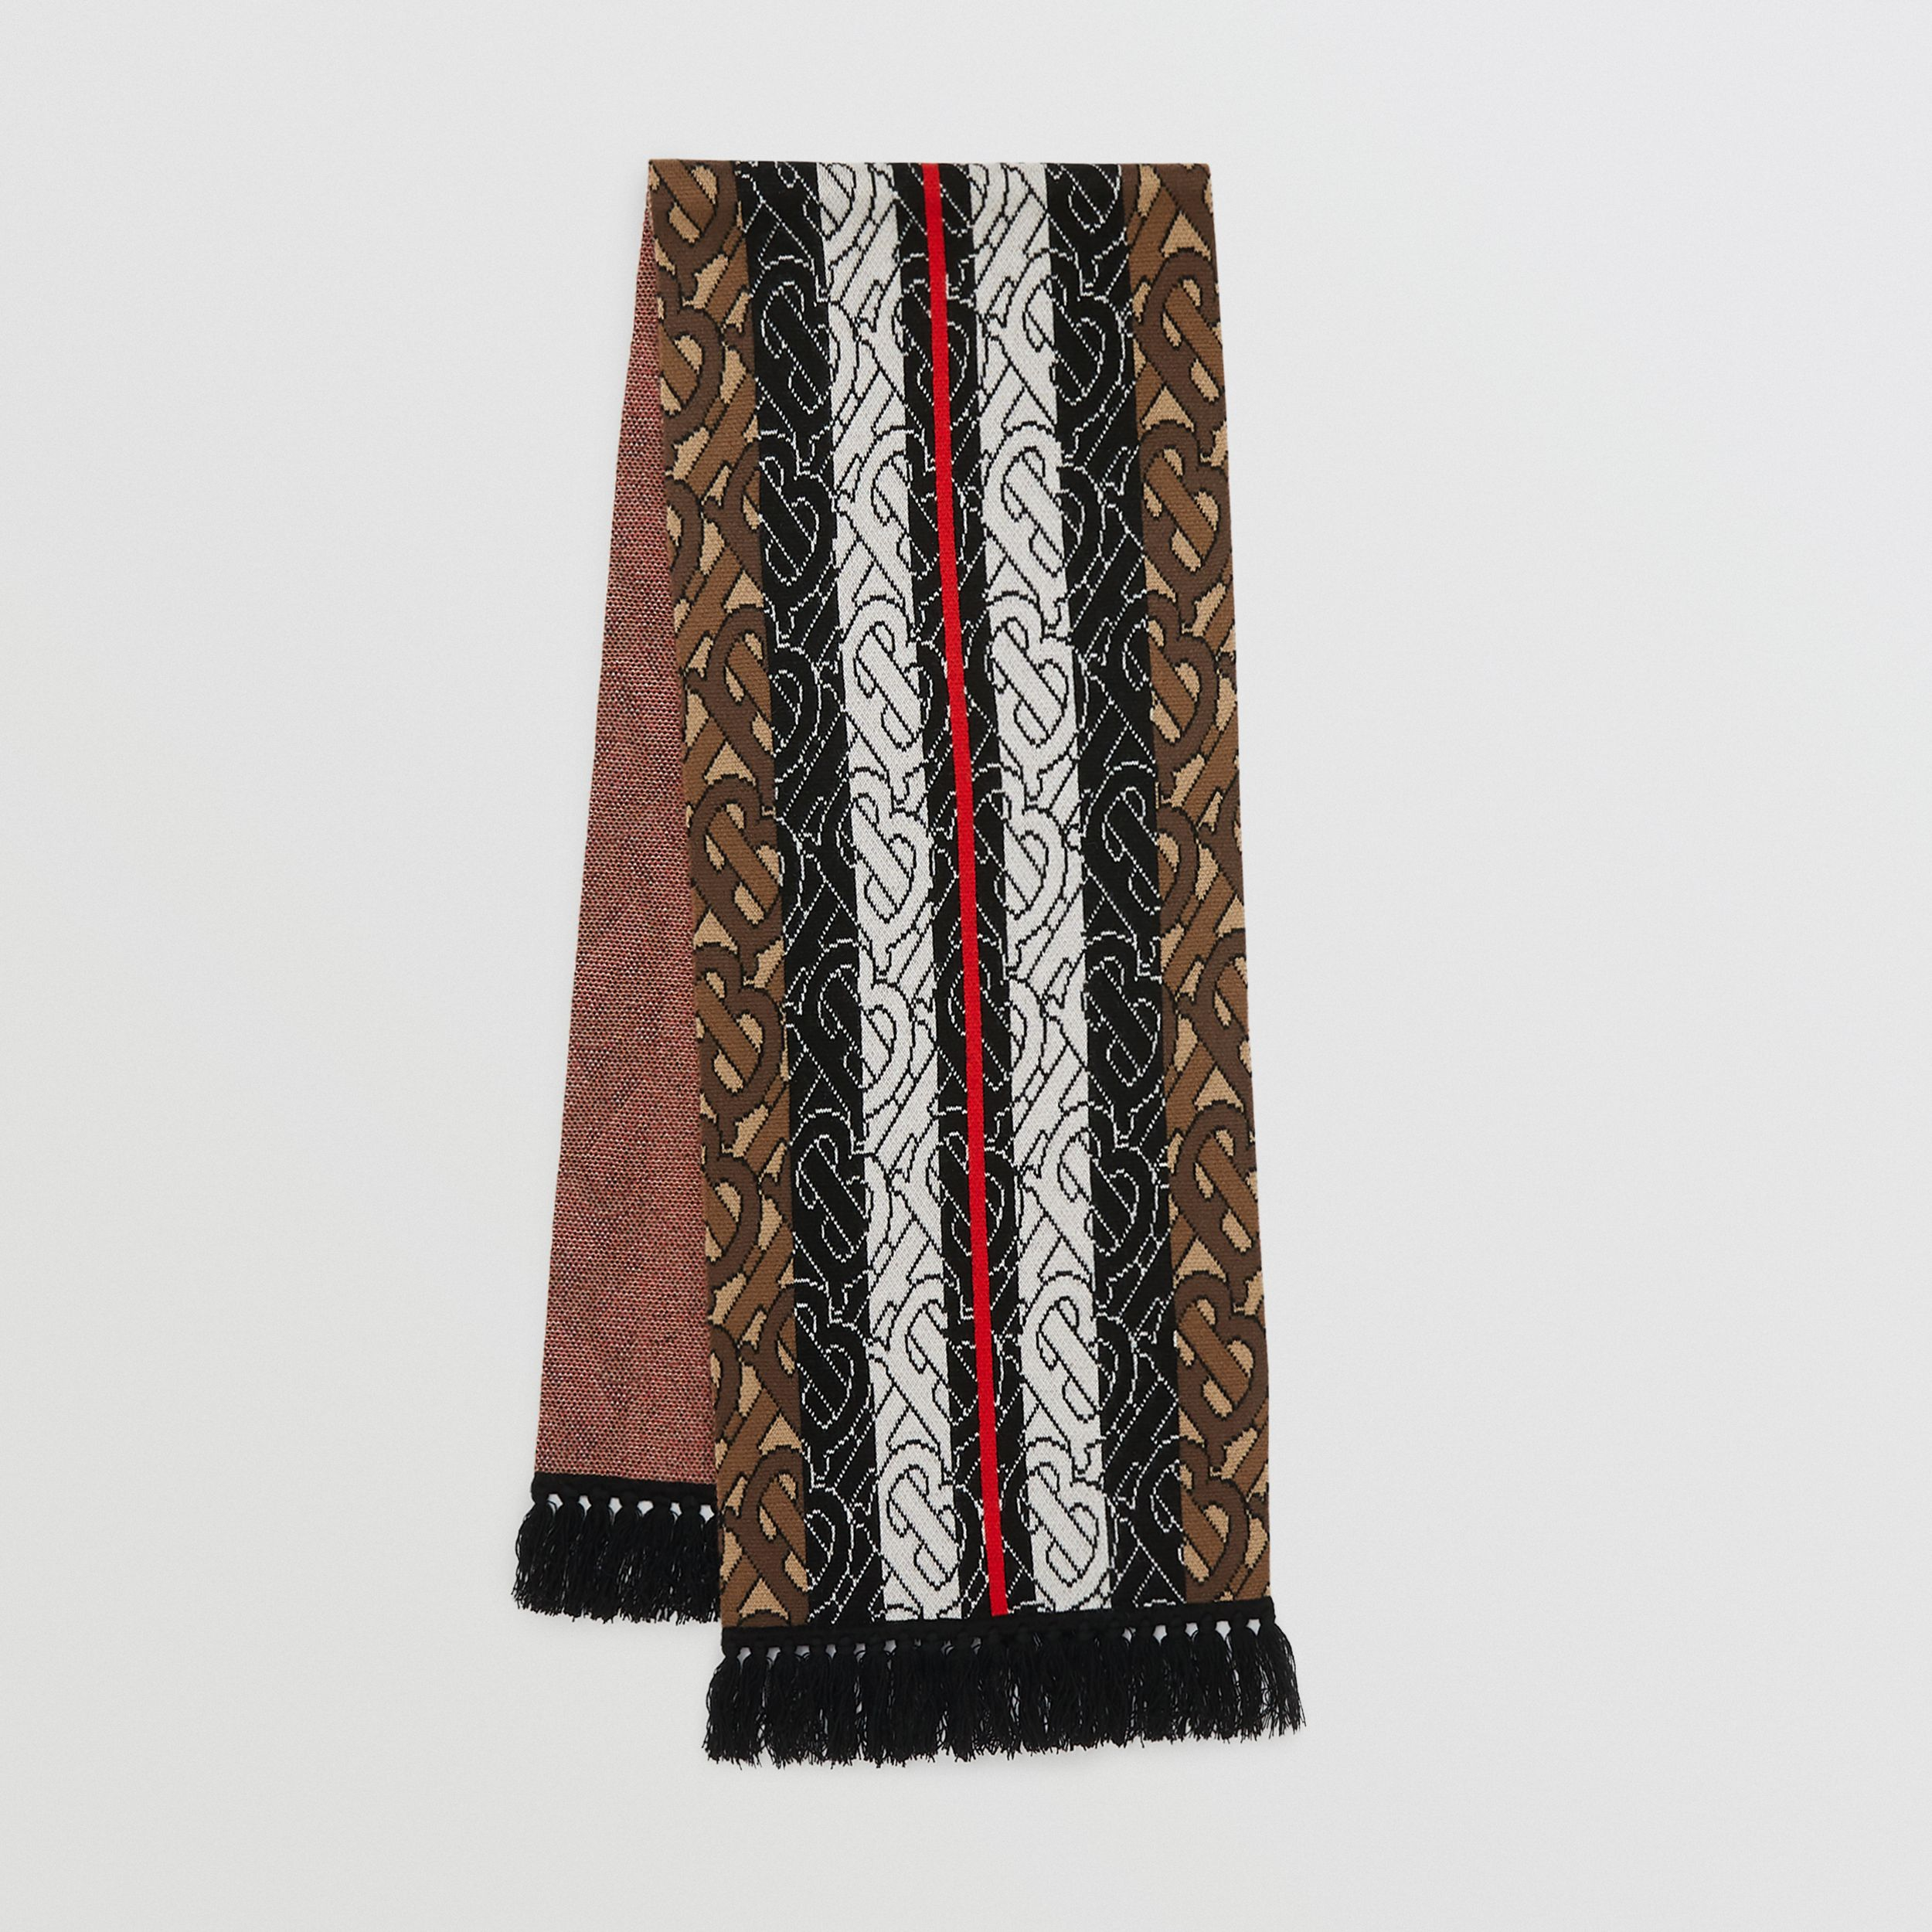 Monogram Stripe Cashmere Scarf in Brown | Burberry - 1